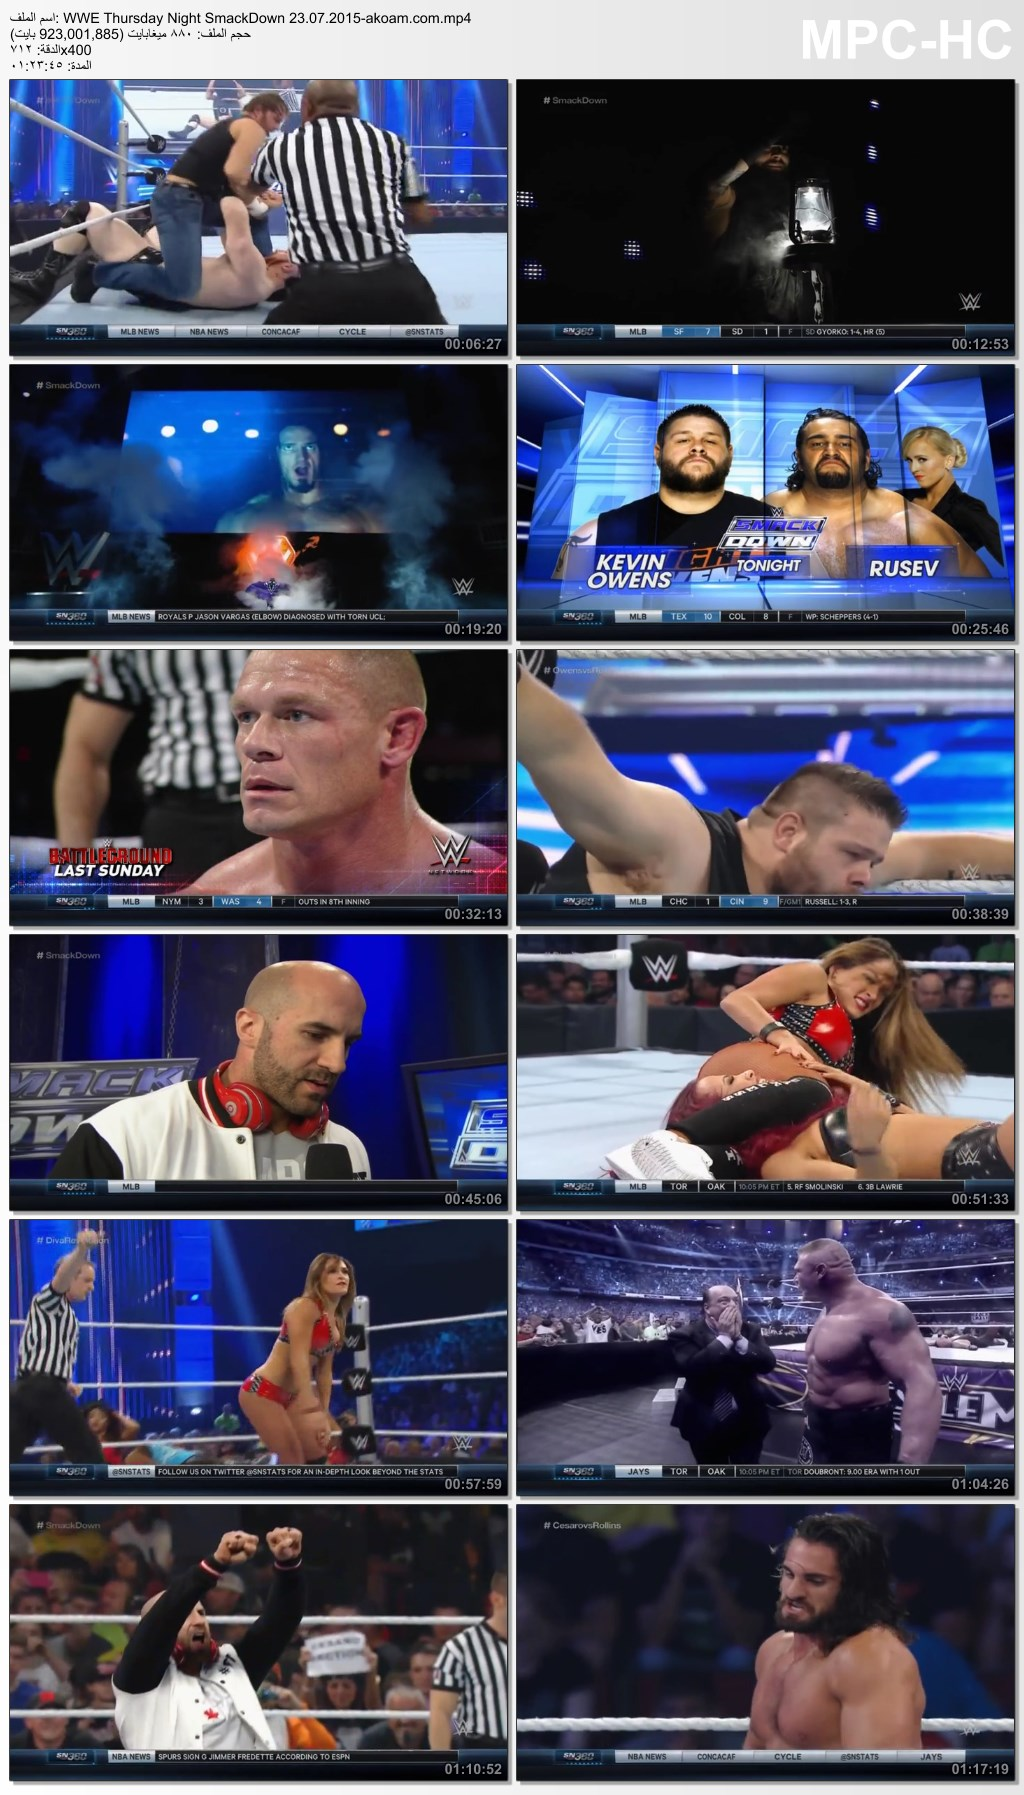 SmackDown,WWE,WWE Thursday Night SmackDown